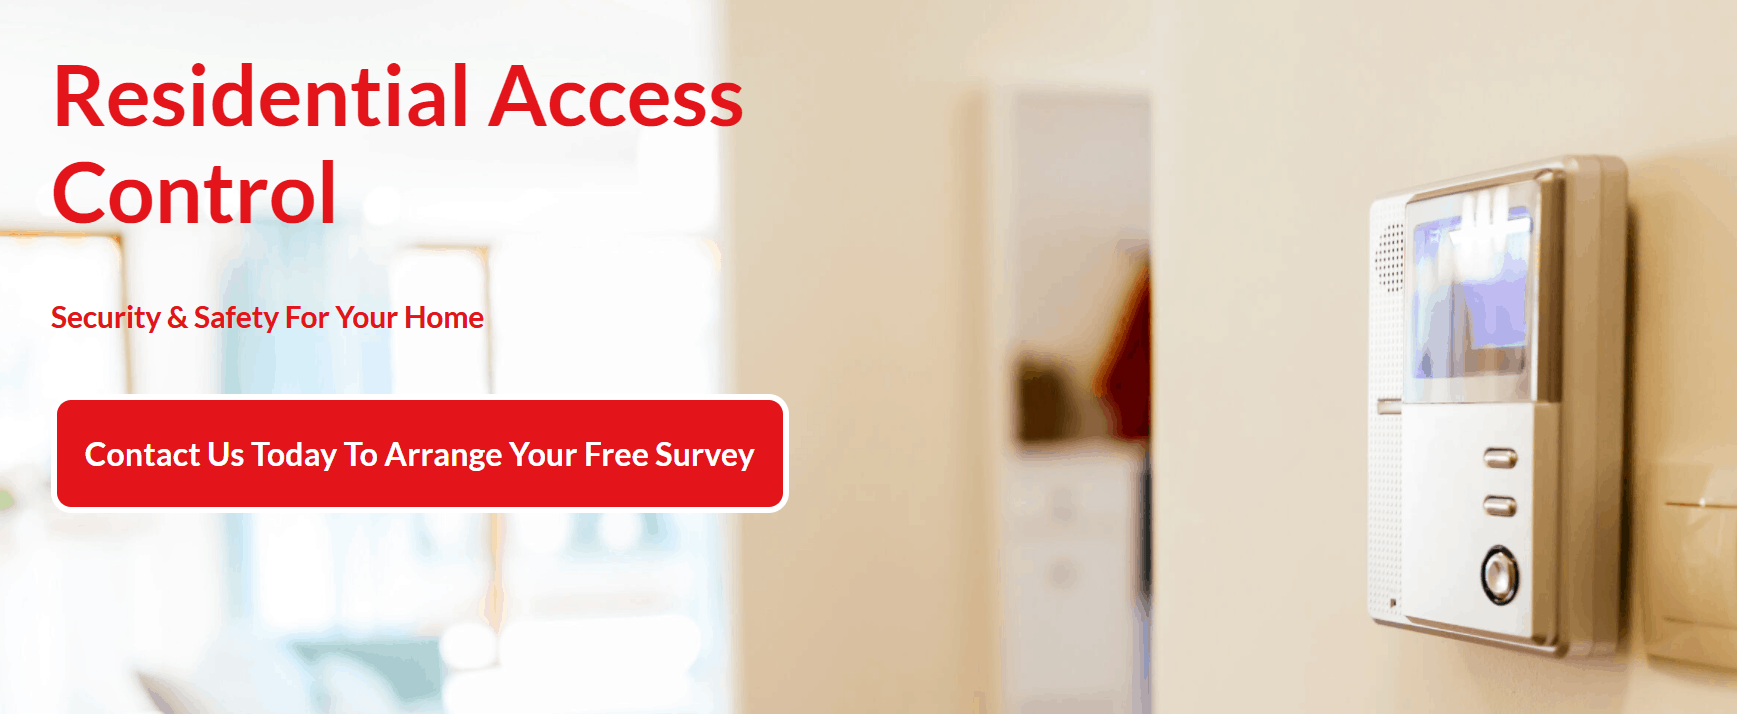 Residential Access Control for Mobile